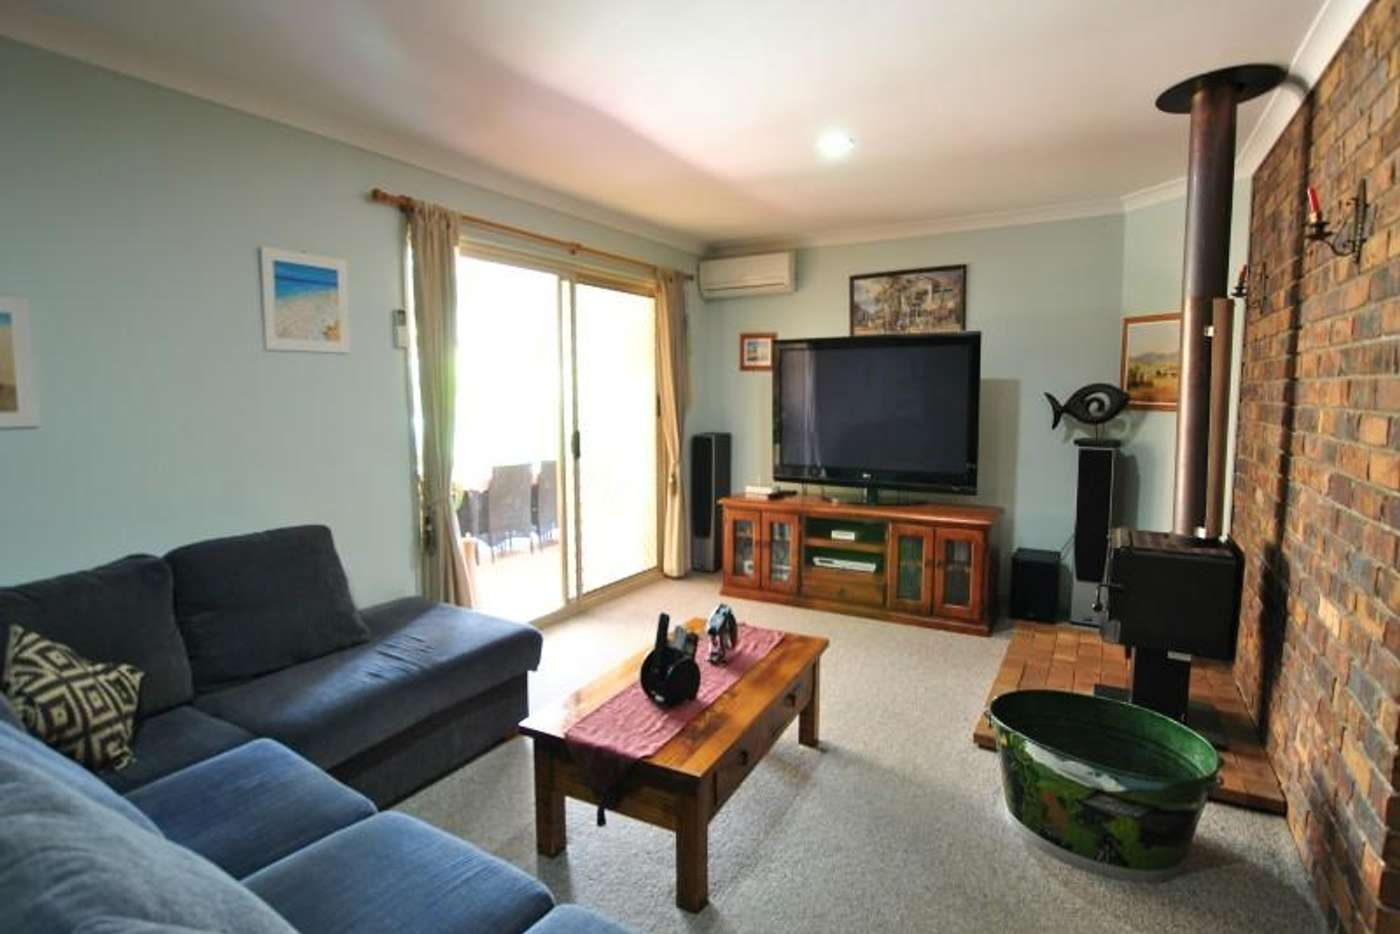 Sixth view of Homely house listing, 22 Sunjewel Boulevard, Currimundi QLD 4551